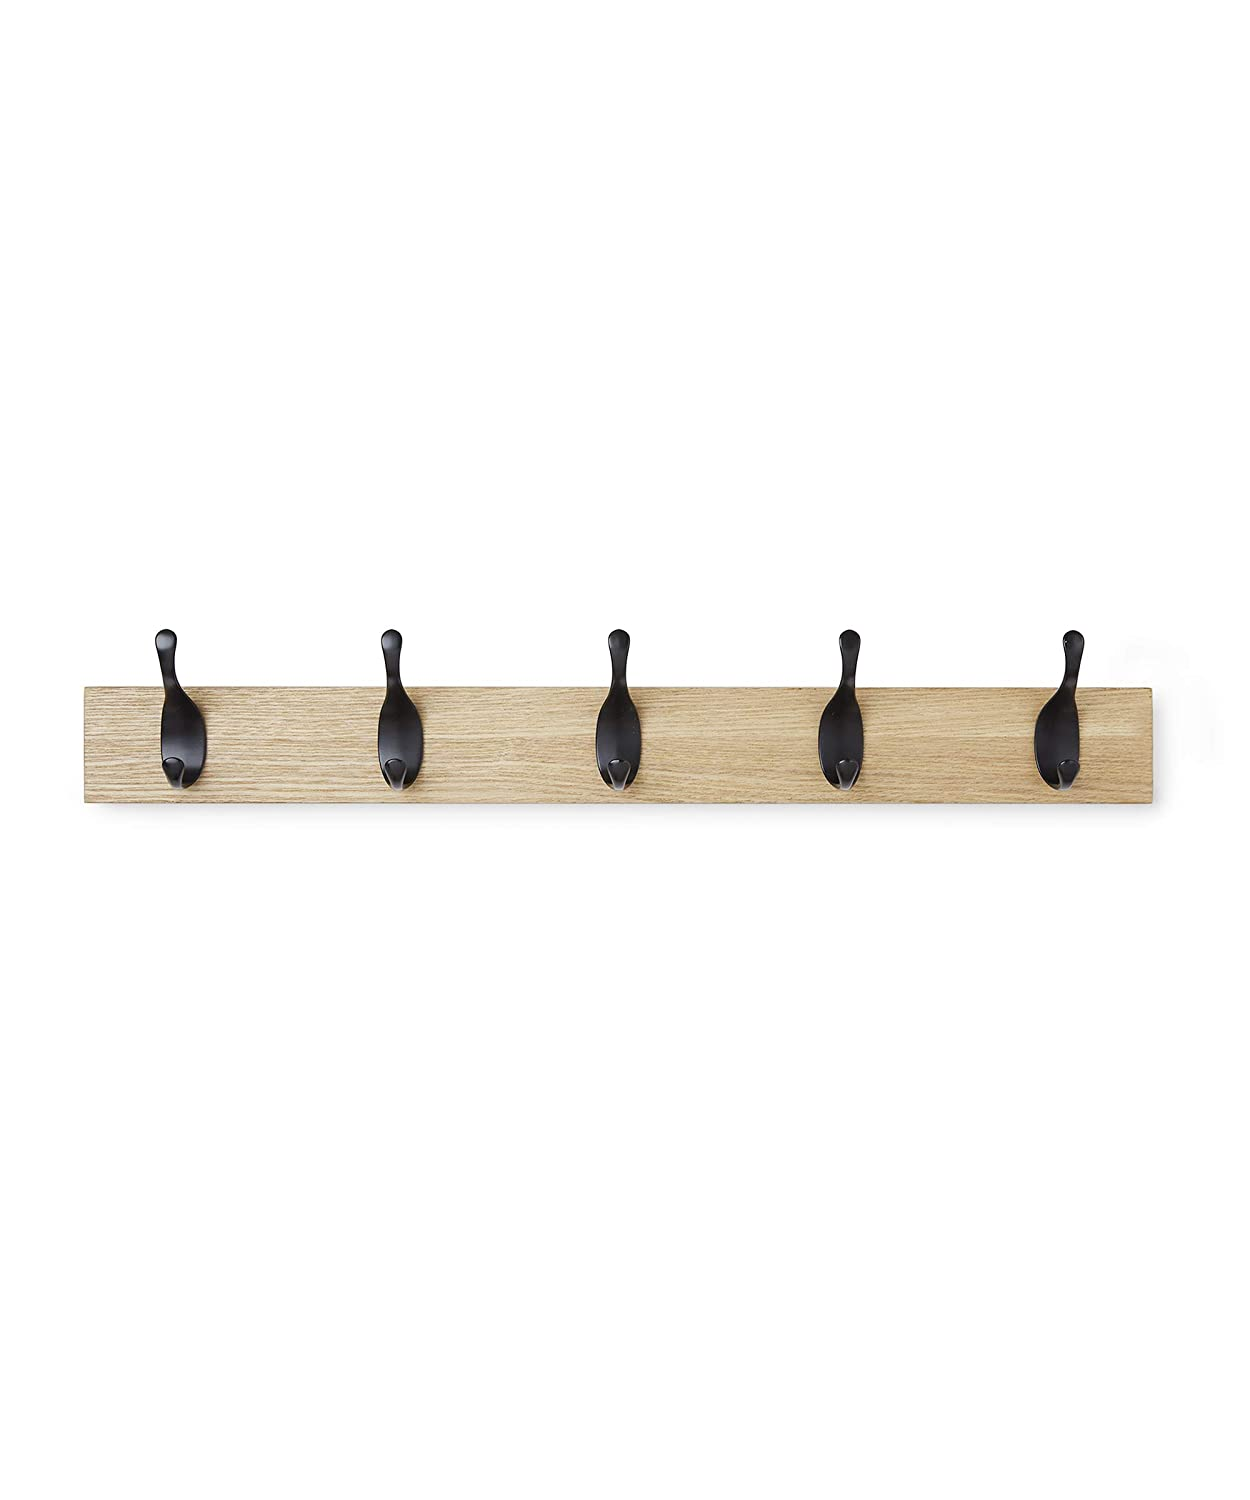 AmazonBasics - Perchero de pared, 5 ganchos modernos ...